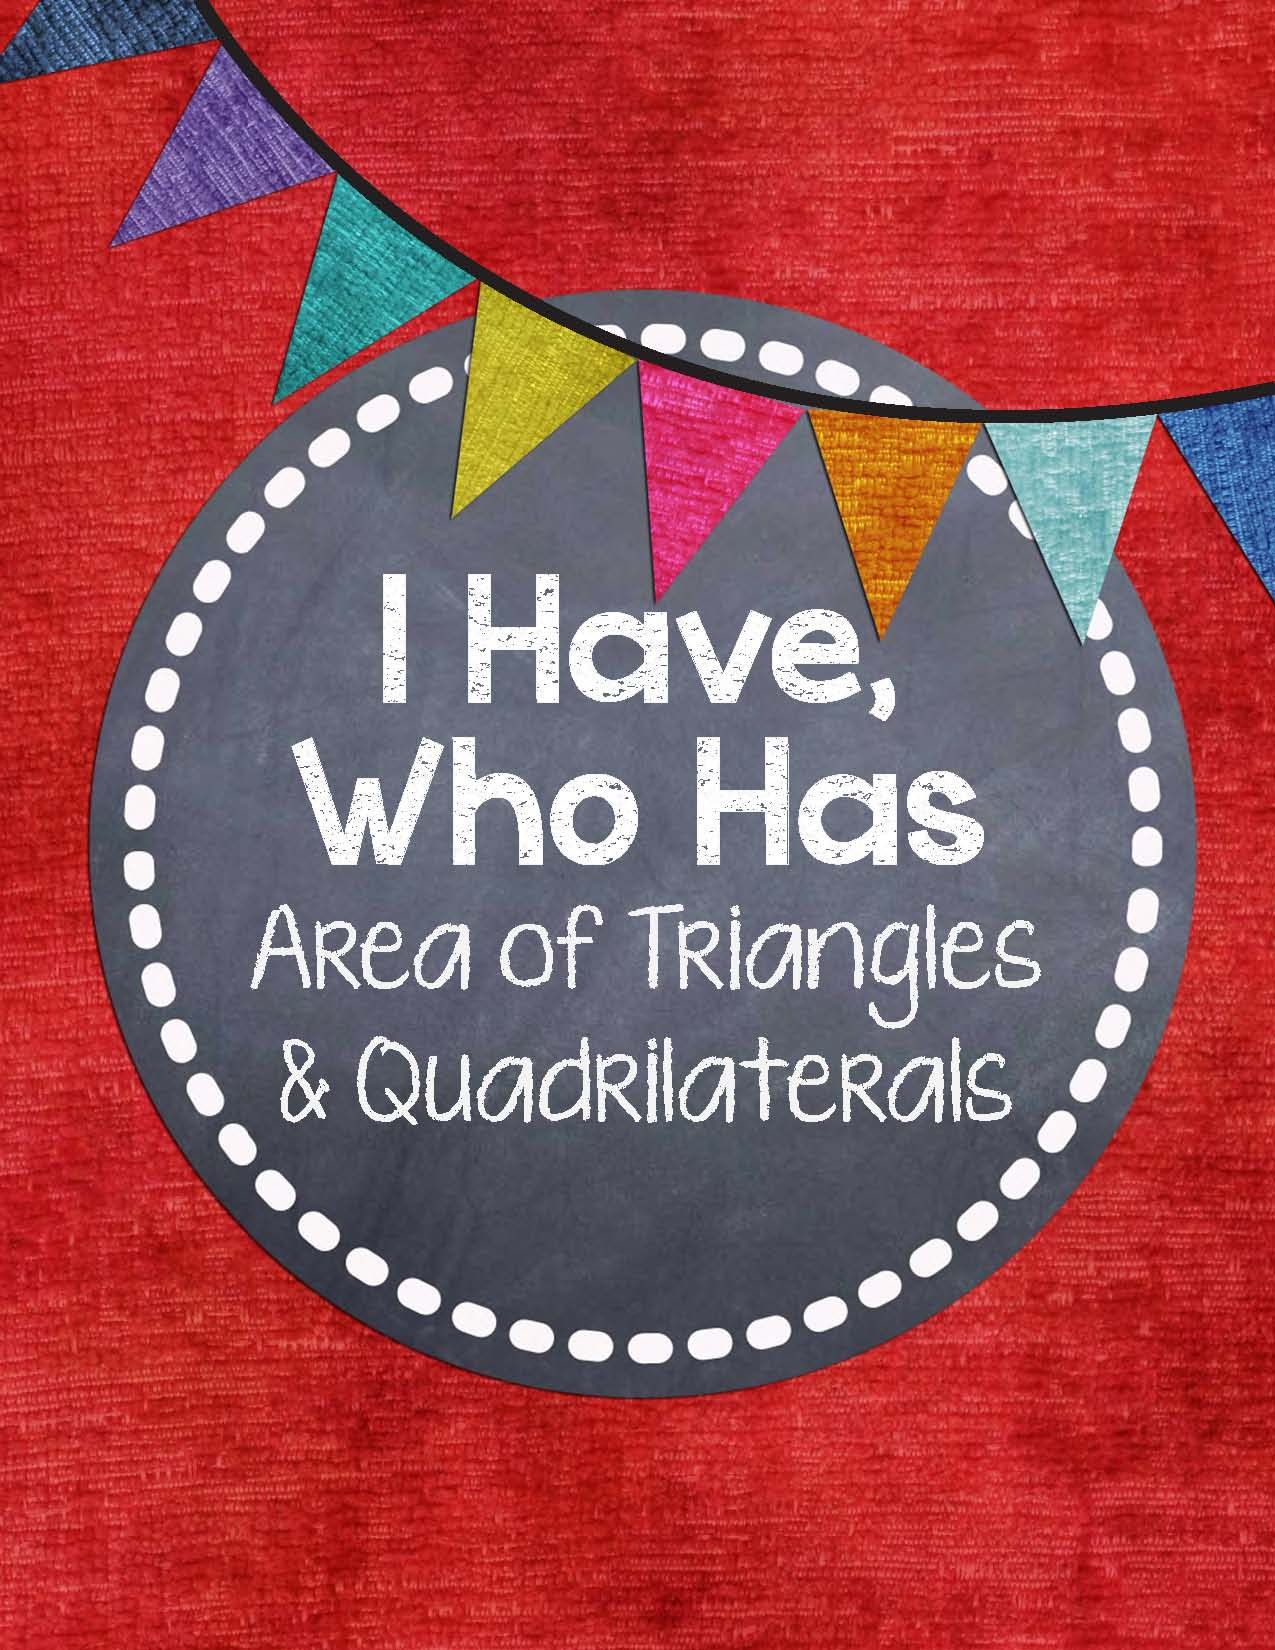 worksheet Area Of Triangles And Quadrilaterals Worksheet i have who has area of quadrilaterals and triangles this game is a fun engaging alternative to practice worksheets your class wil